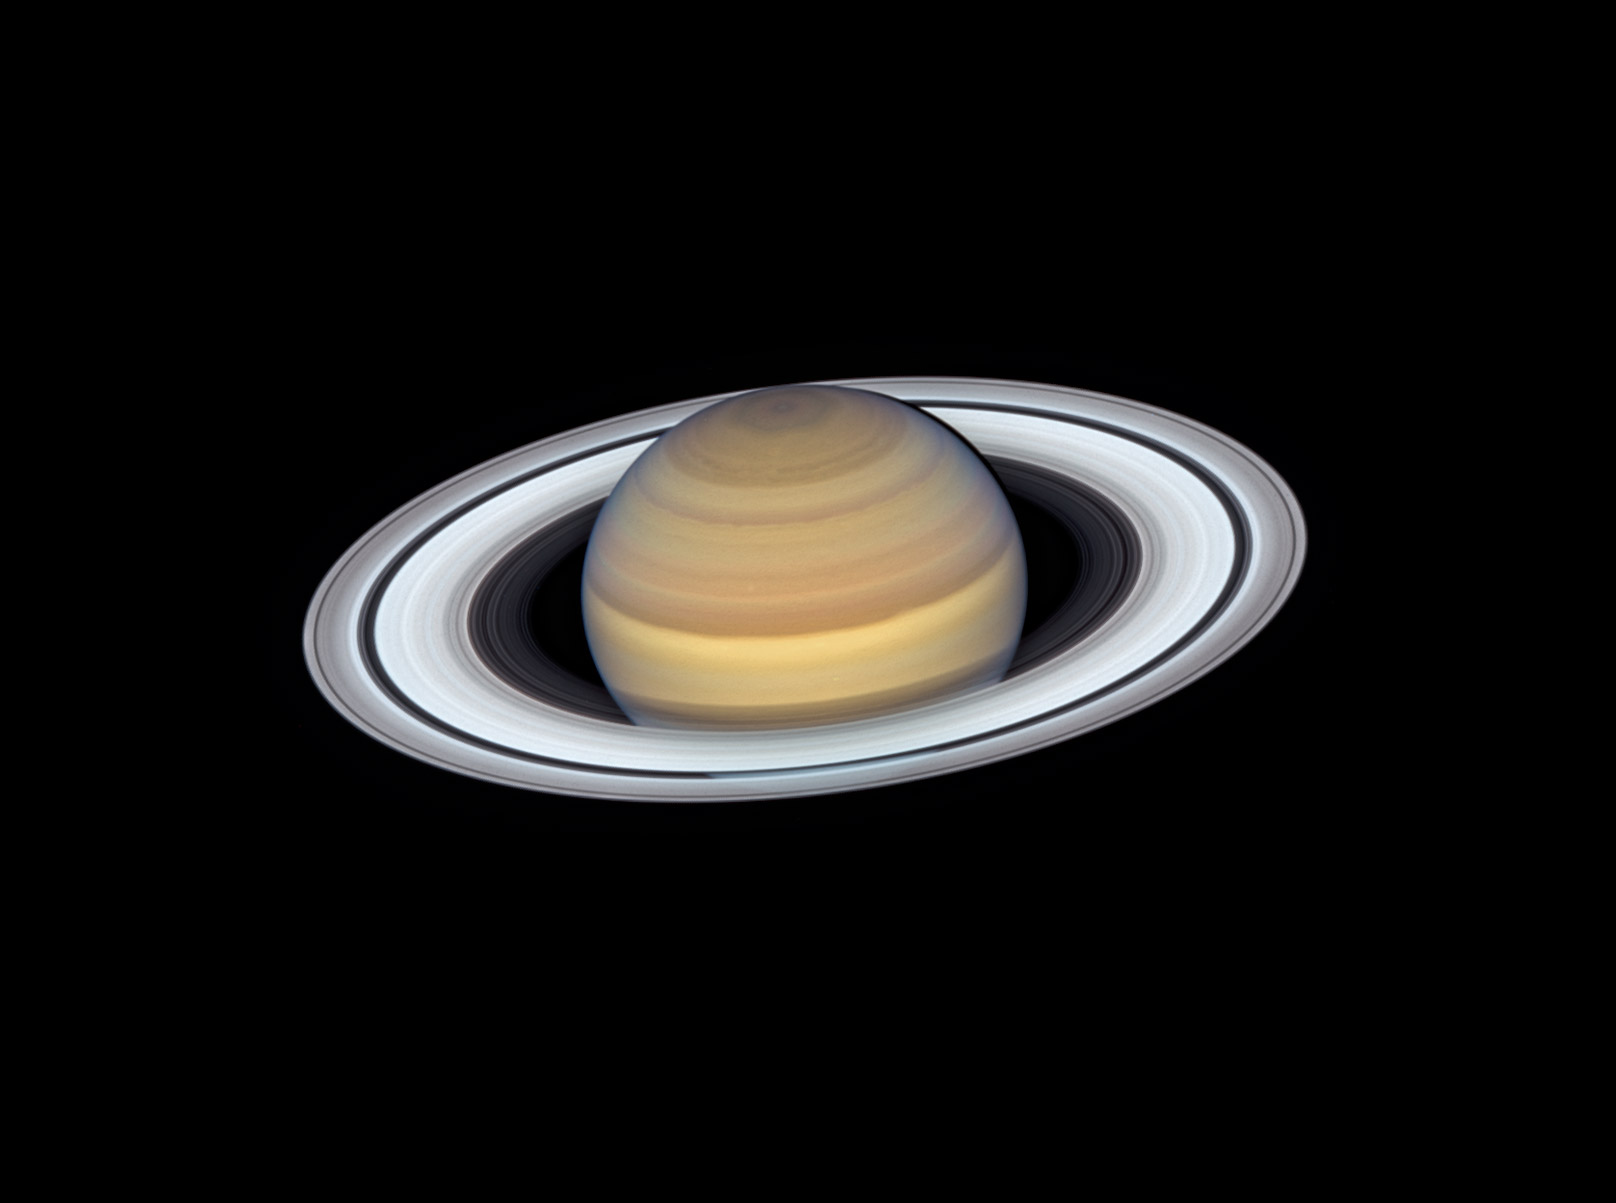 saturn and its rings on a back background